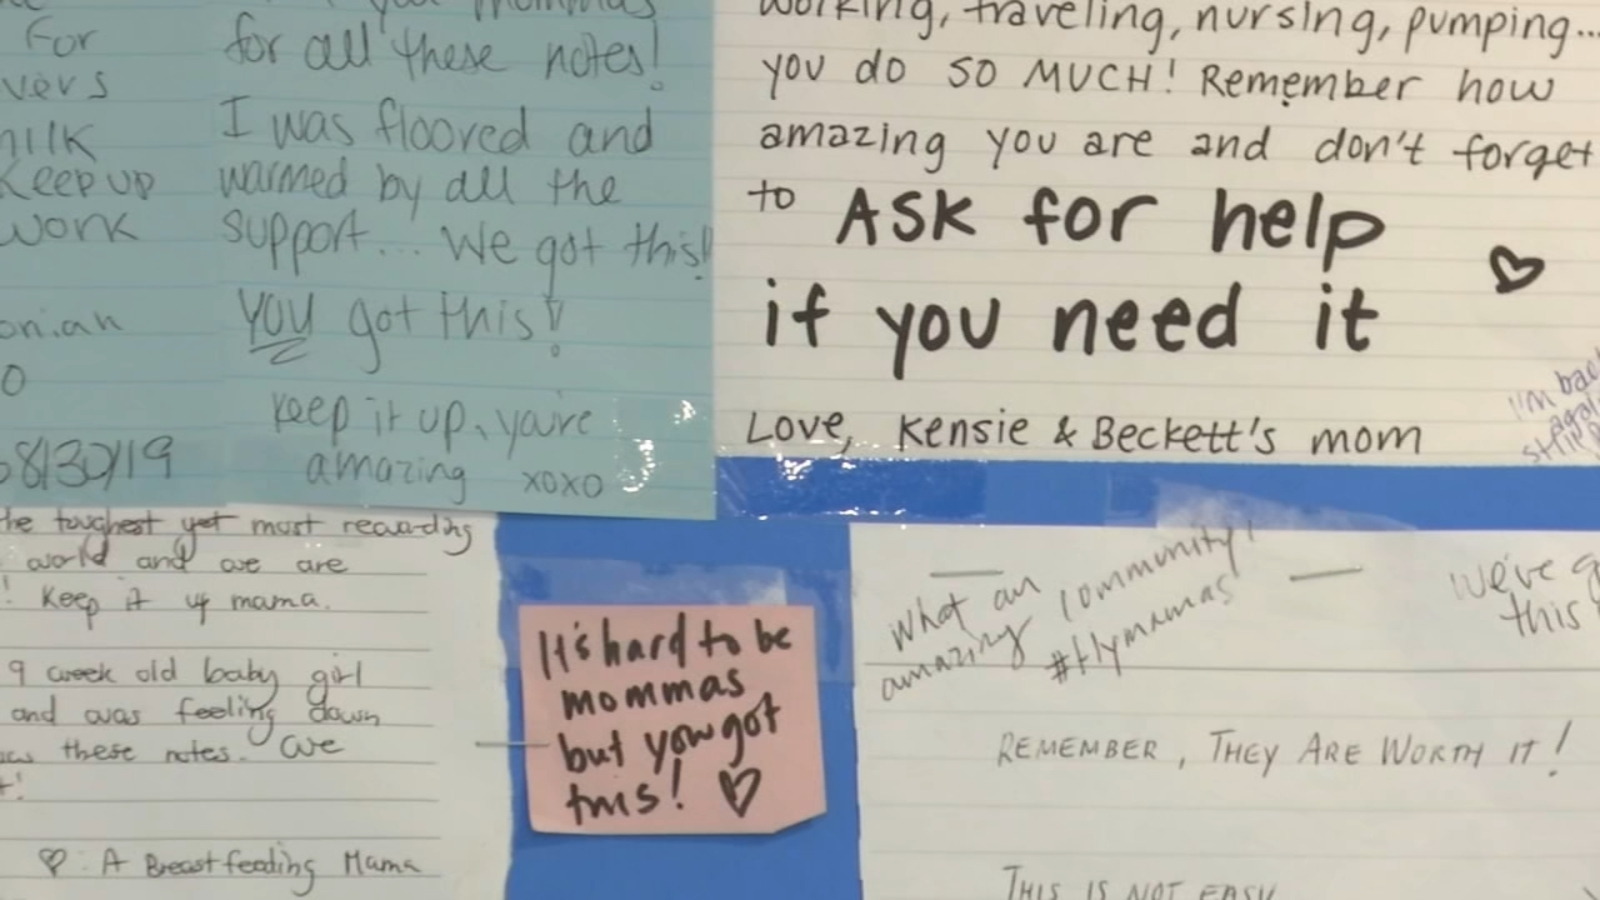 Moms help moms with encouraging notes in Philadelphia airport nursing pod